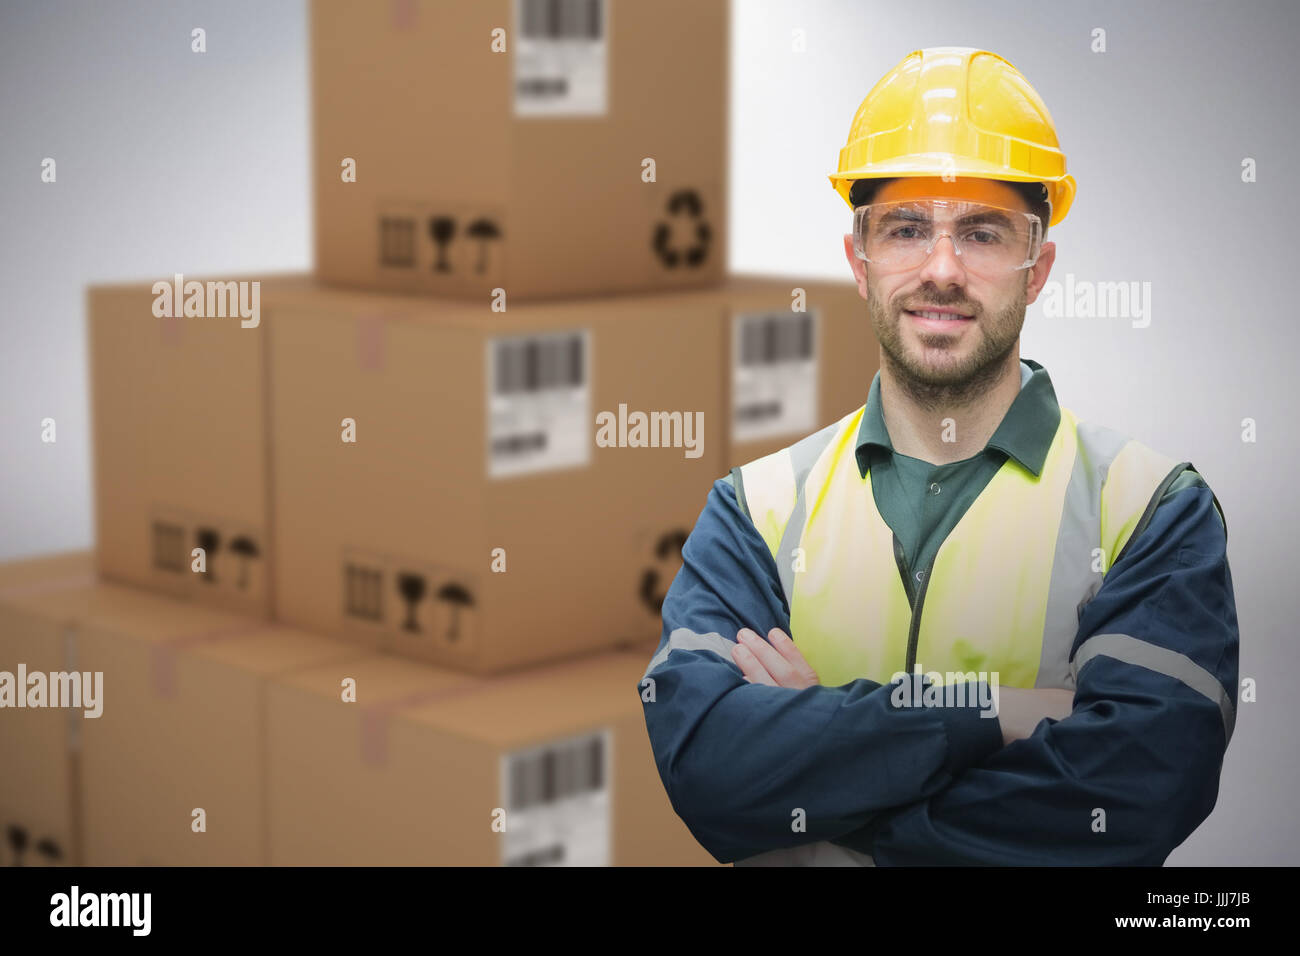 Composite 3d image of manual worker wearing hardhat and eyewear - Stock Image